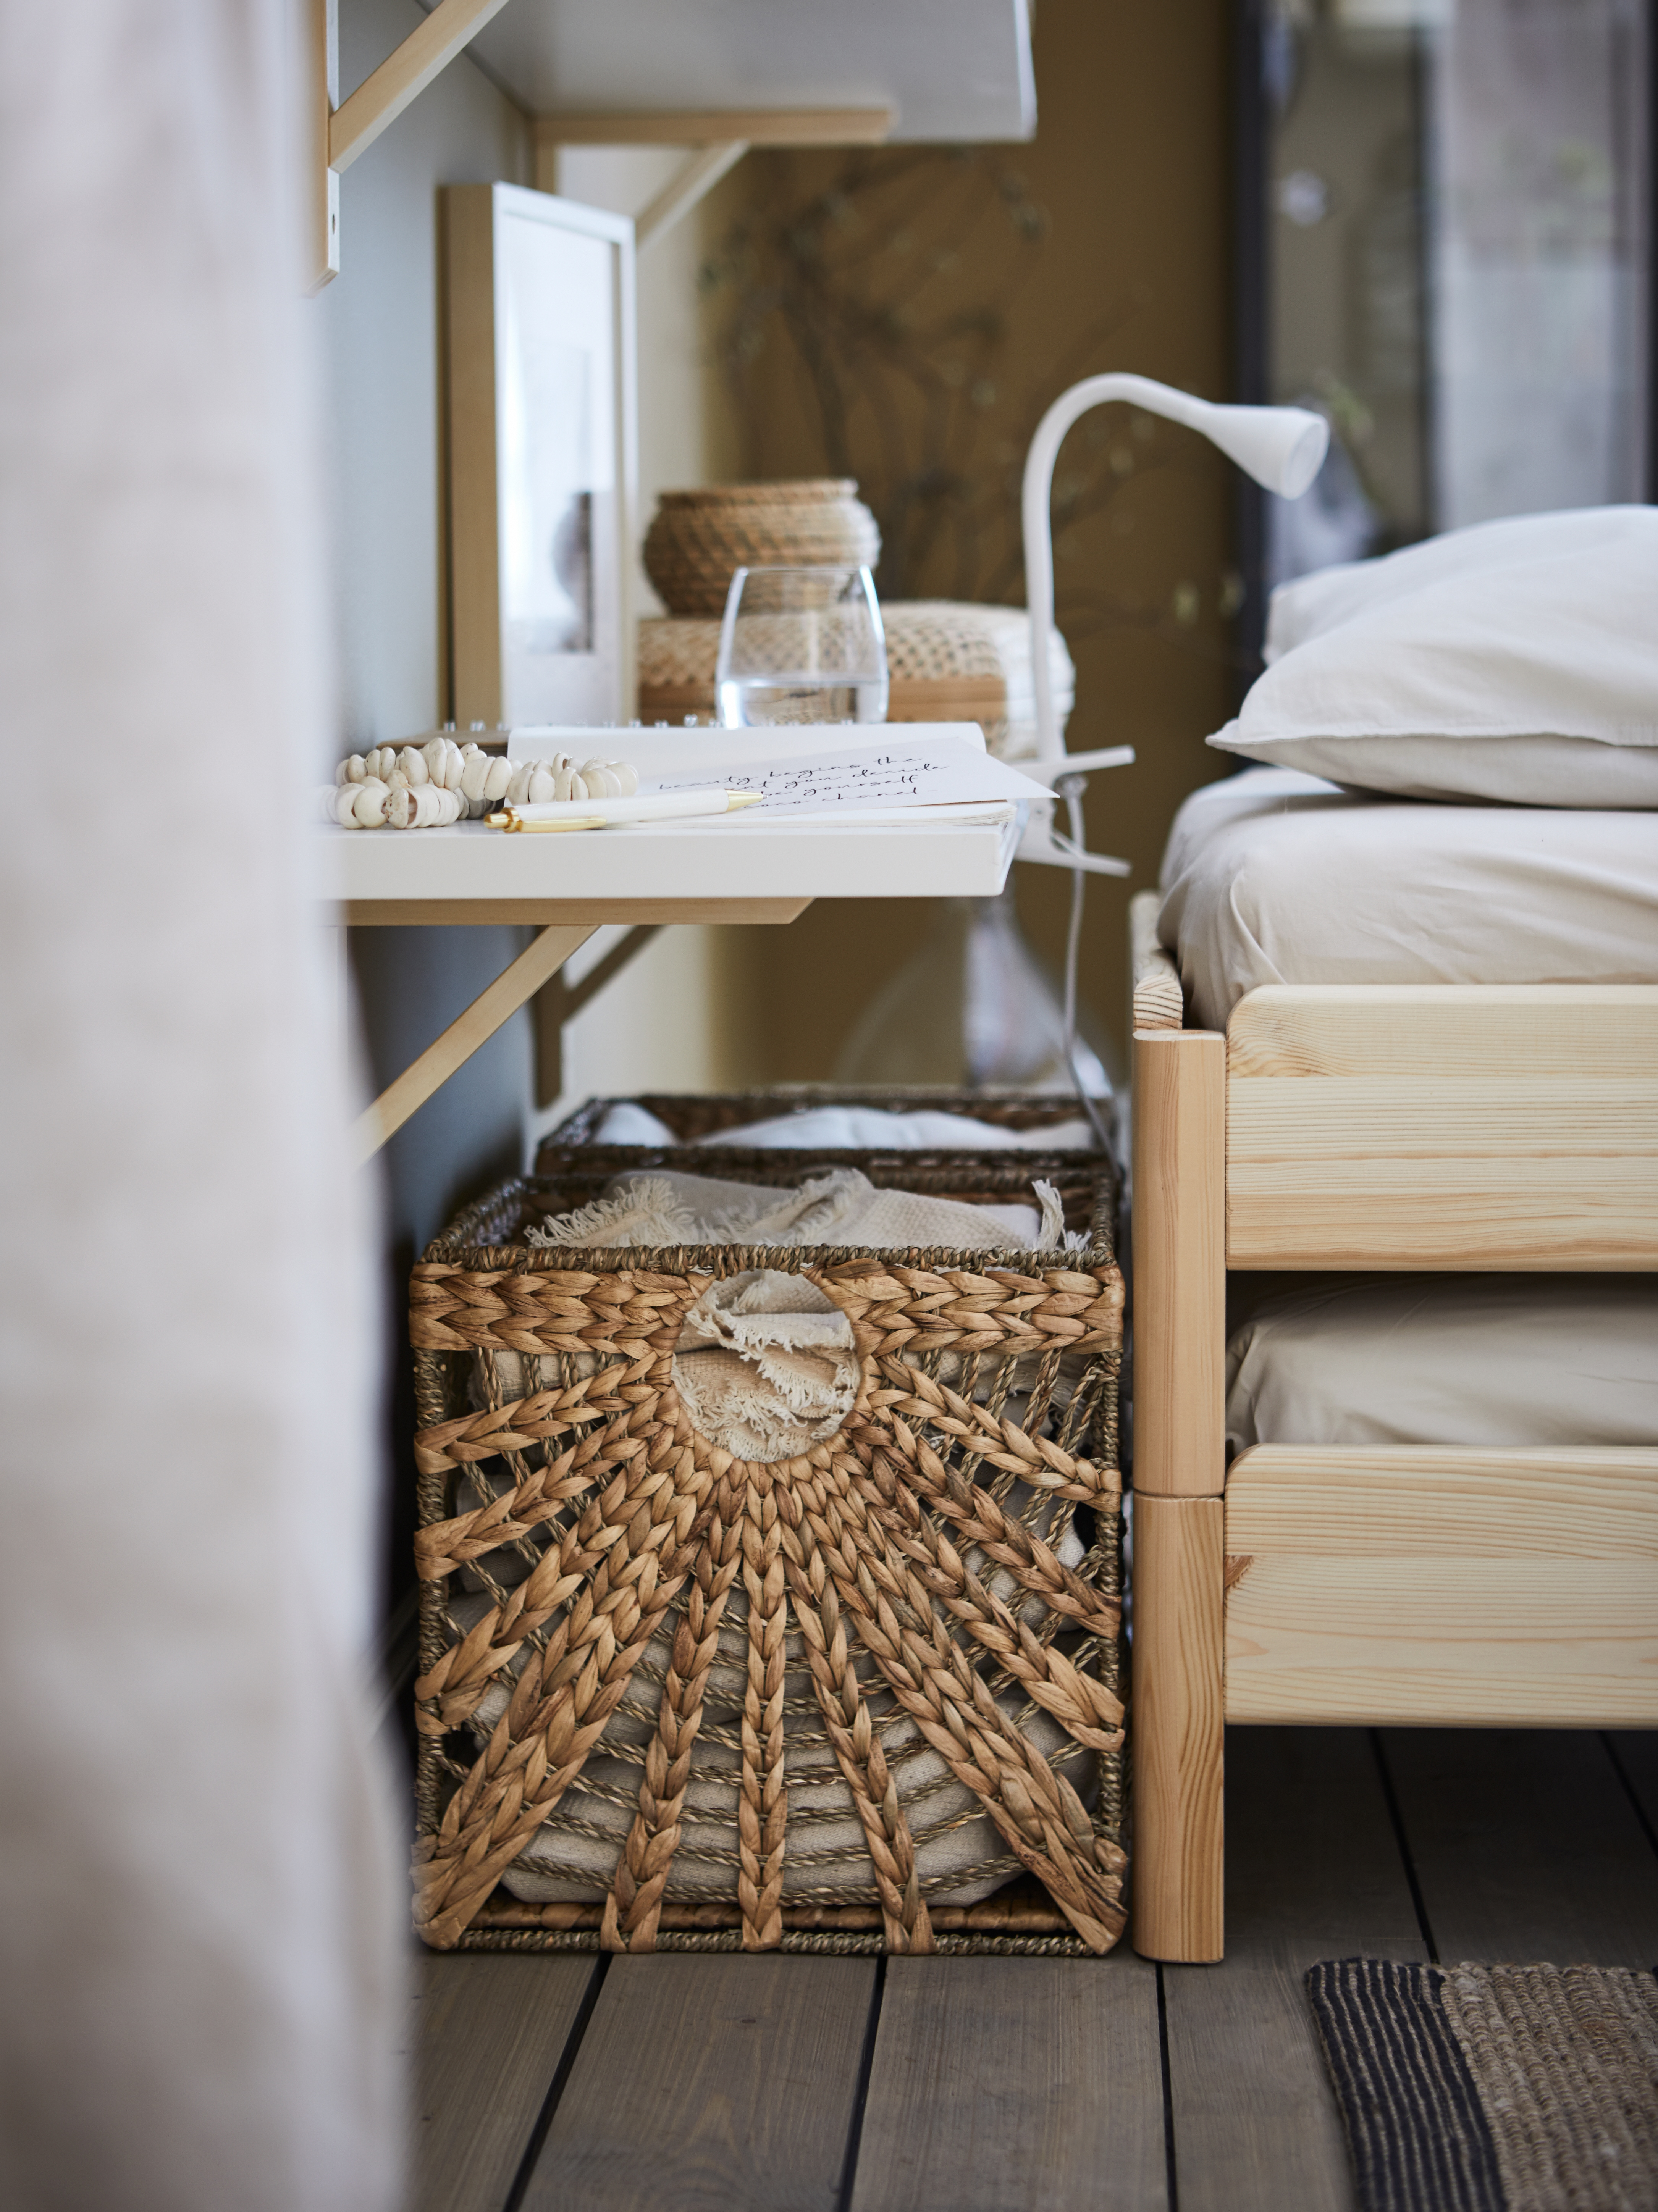 A shelf functioning as a bedside table, two LUSTIGKURRE natural water hyacinth/seagrass baskets and the head of a bed.